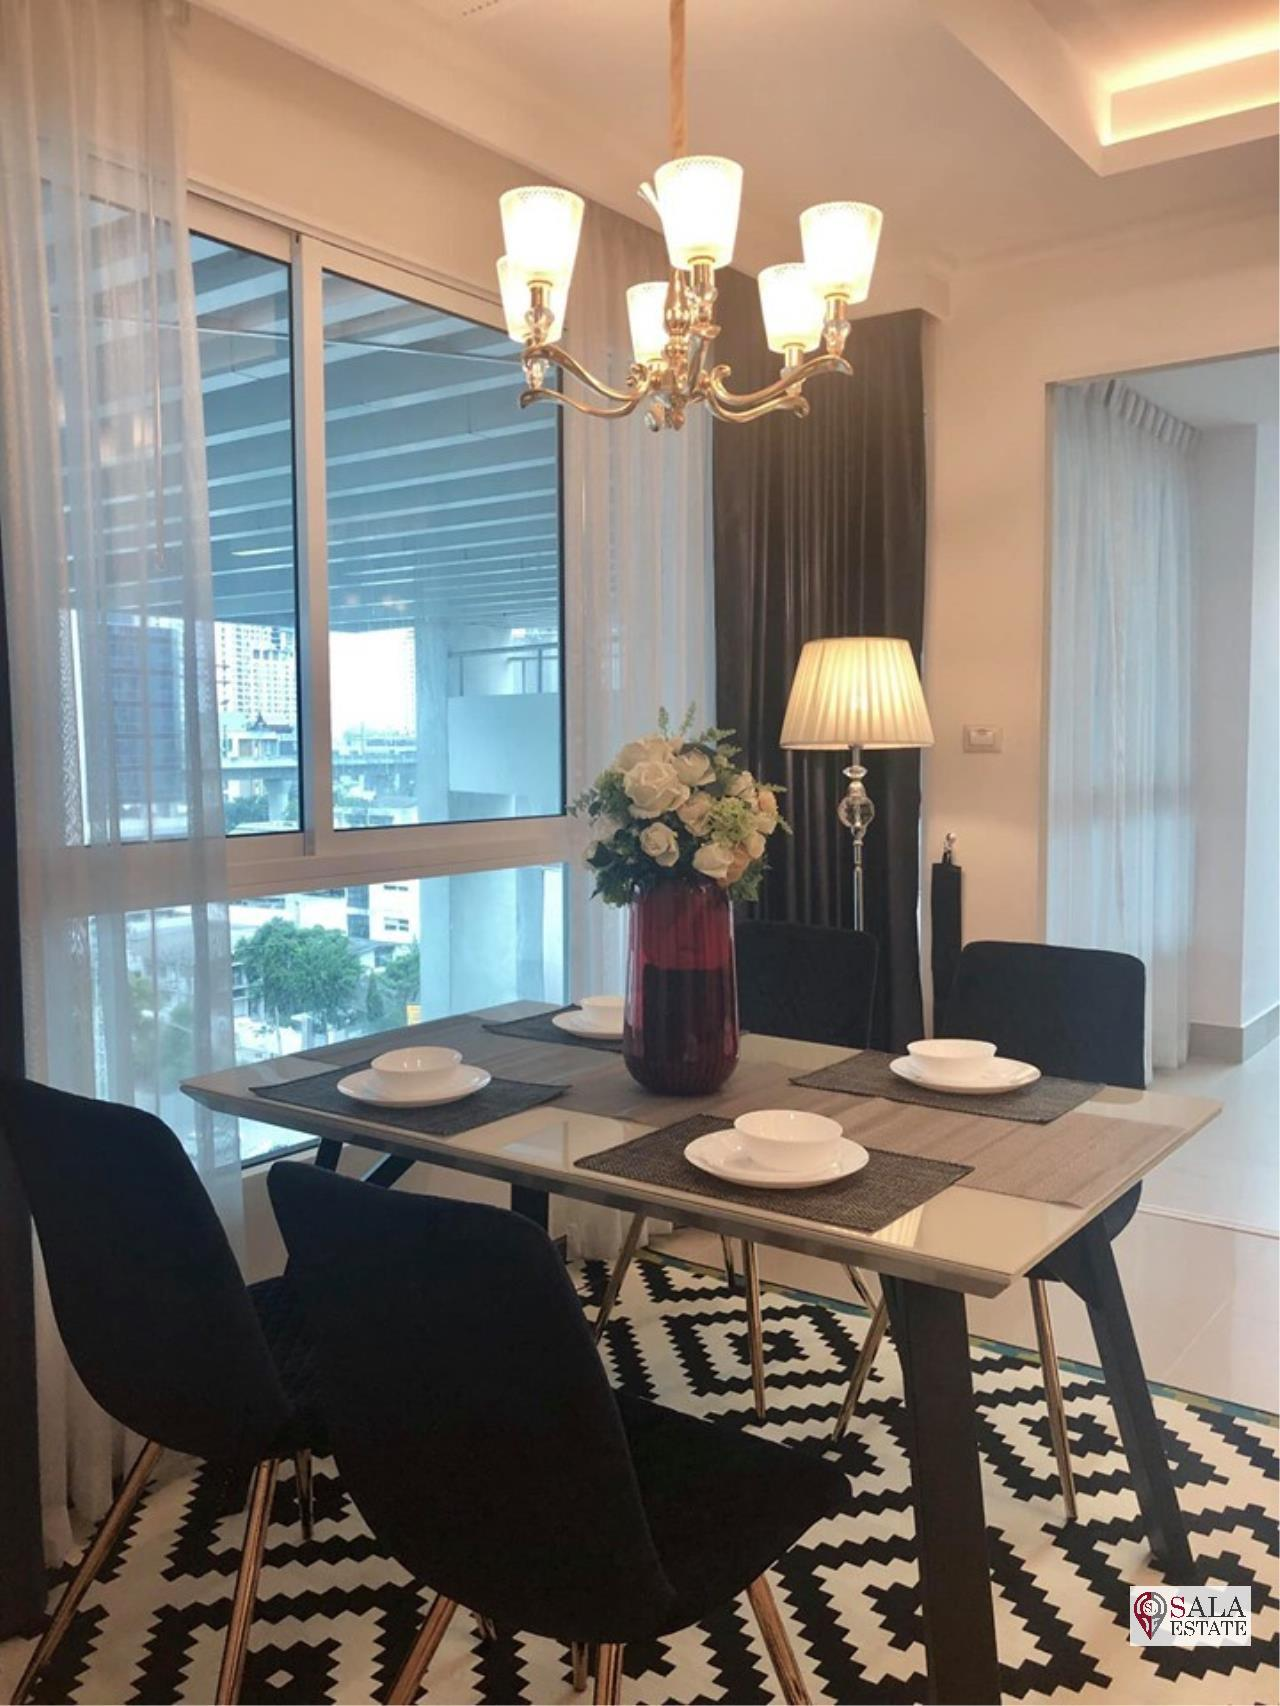 SALA ESTATE Agency's (FOR RENT) SUPALAI ELITE PHAYATHAI – BTS PHAYA THAI,70 SQM 1 BEDROOM 1 BATHROOM, FULLY FERNISHED, CITY VIEW 16